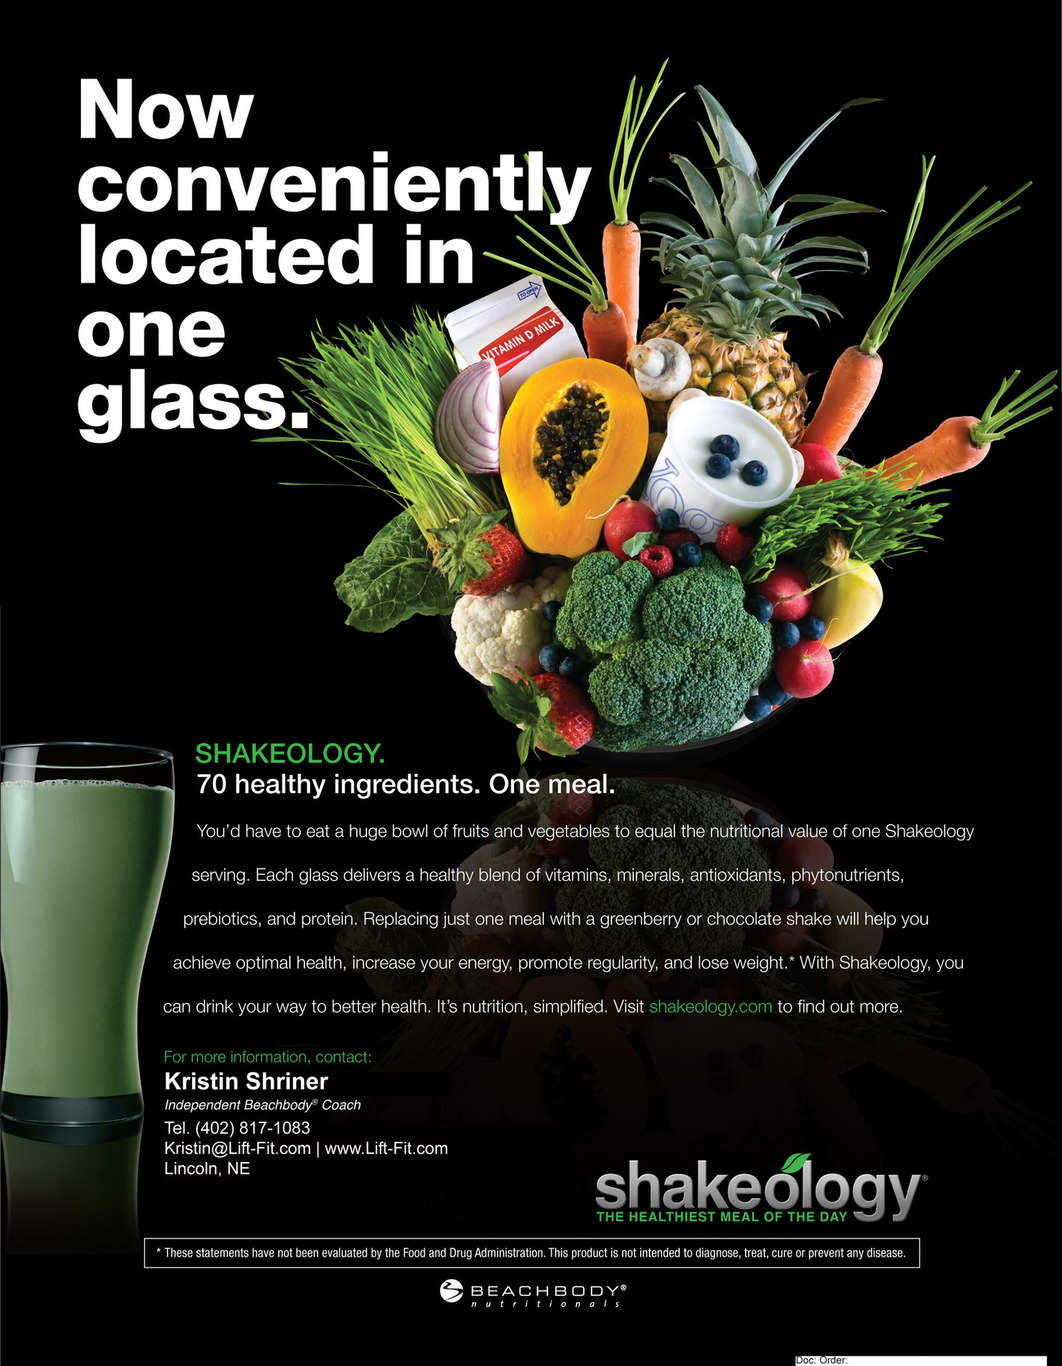 Shakeology Alternative - Substitutes For Shakeology?